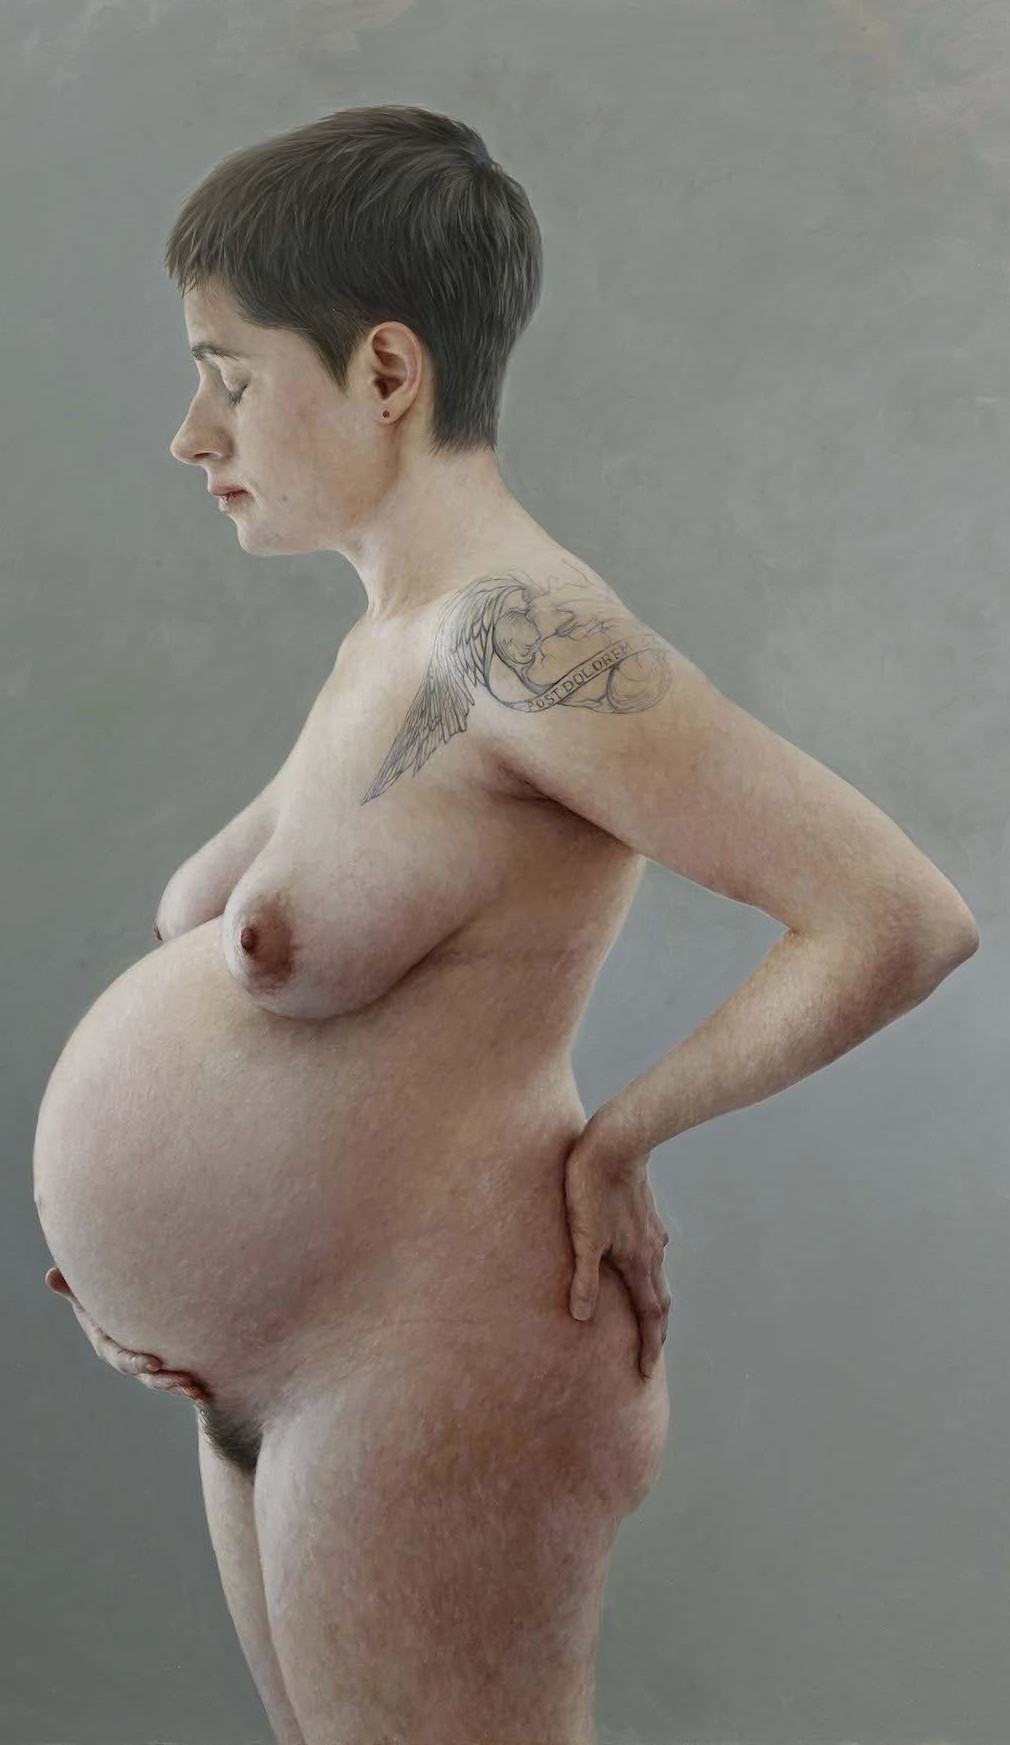 Aleah Chapin Oil Paintings Pregnant Woman Feature